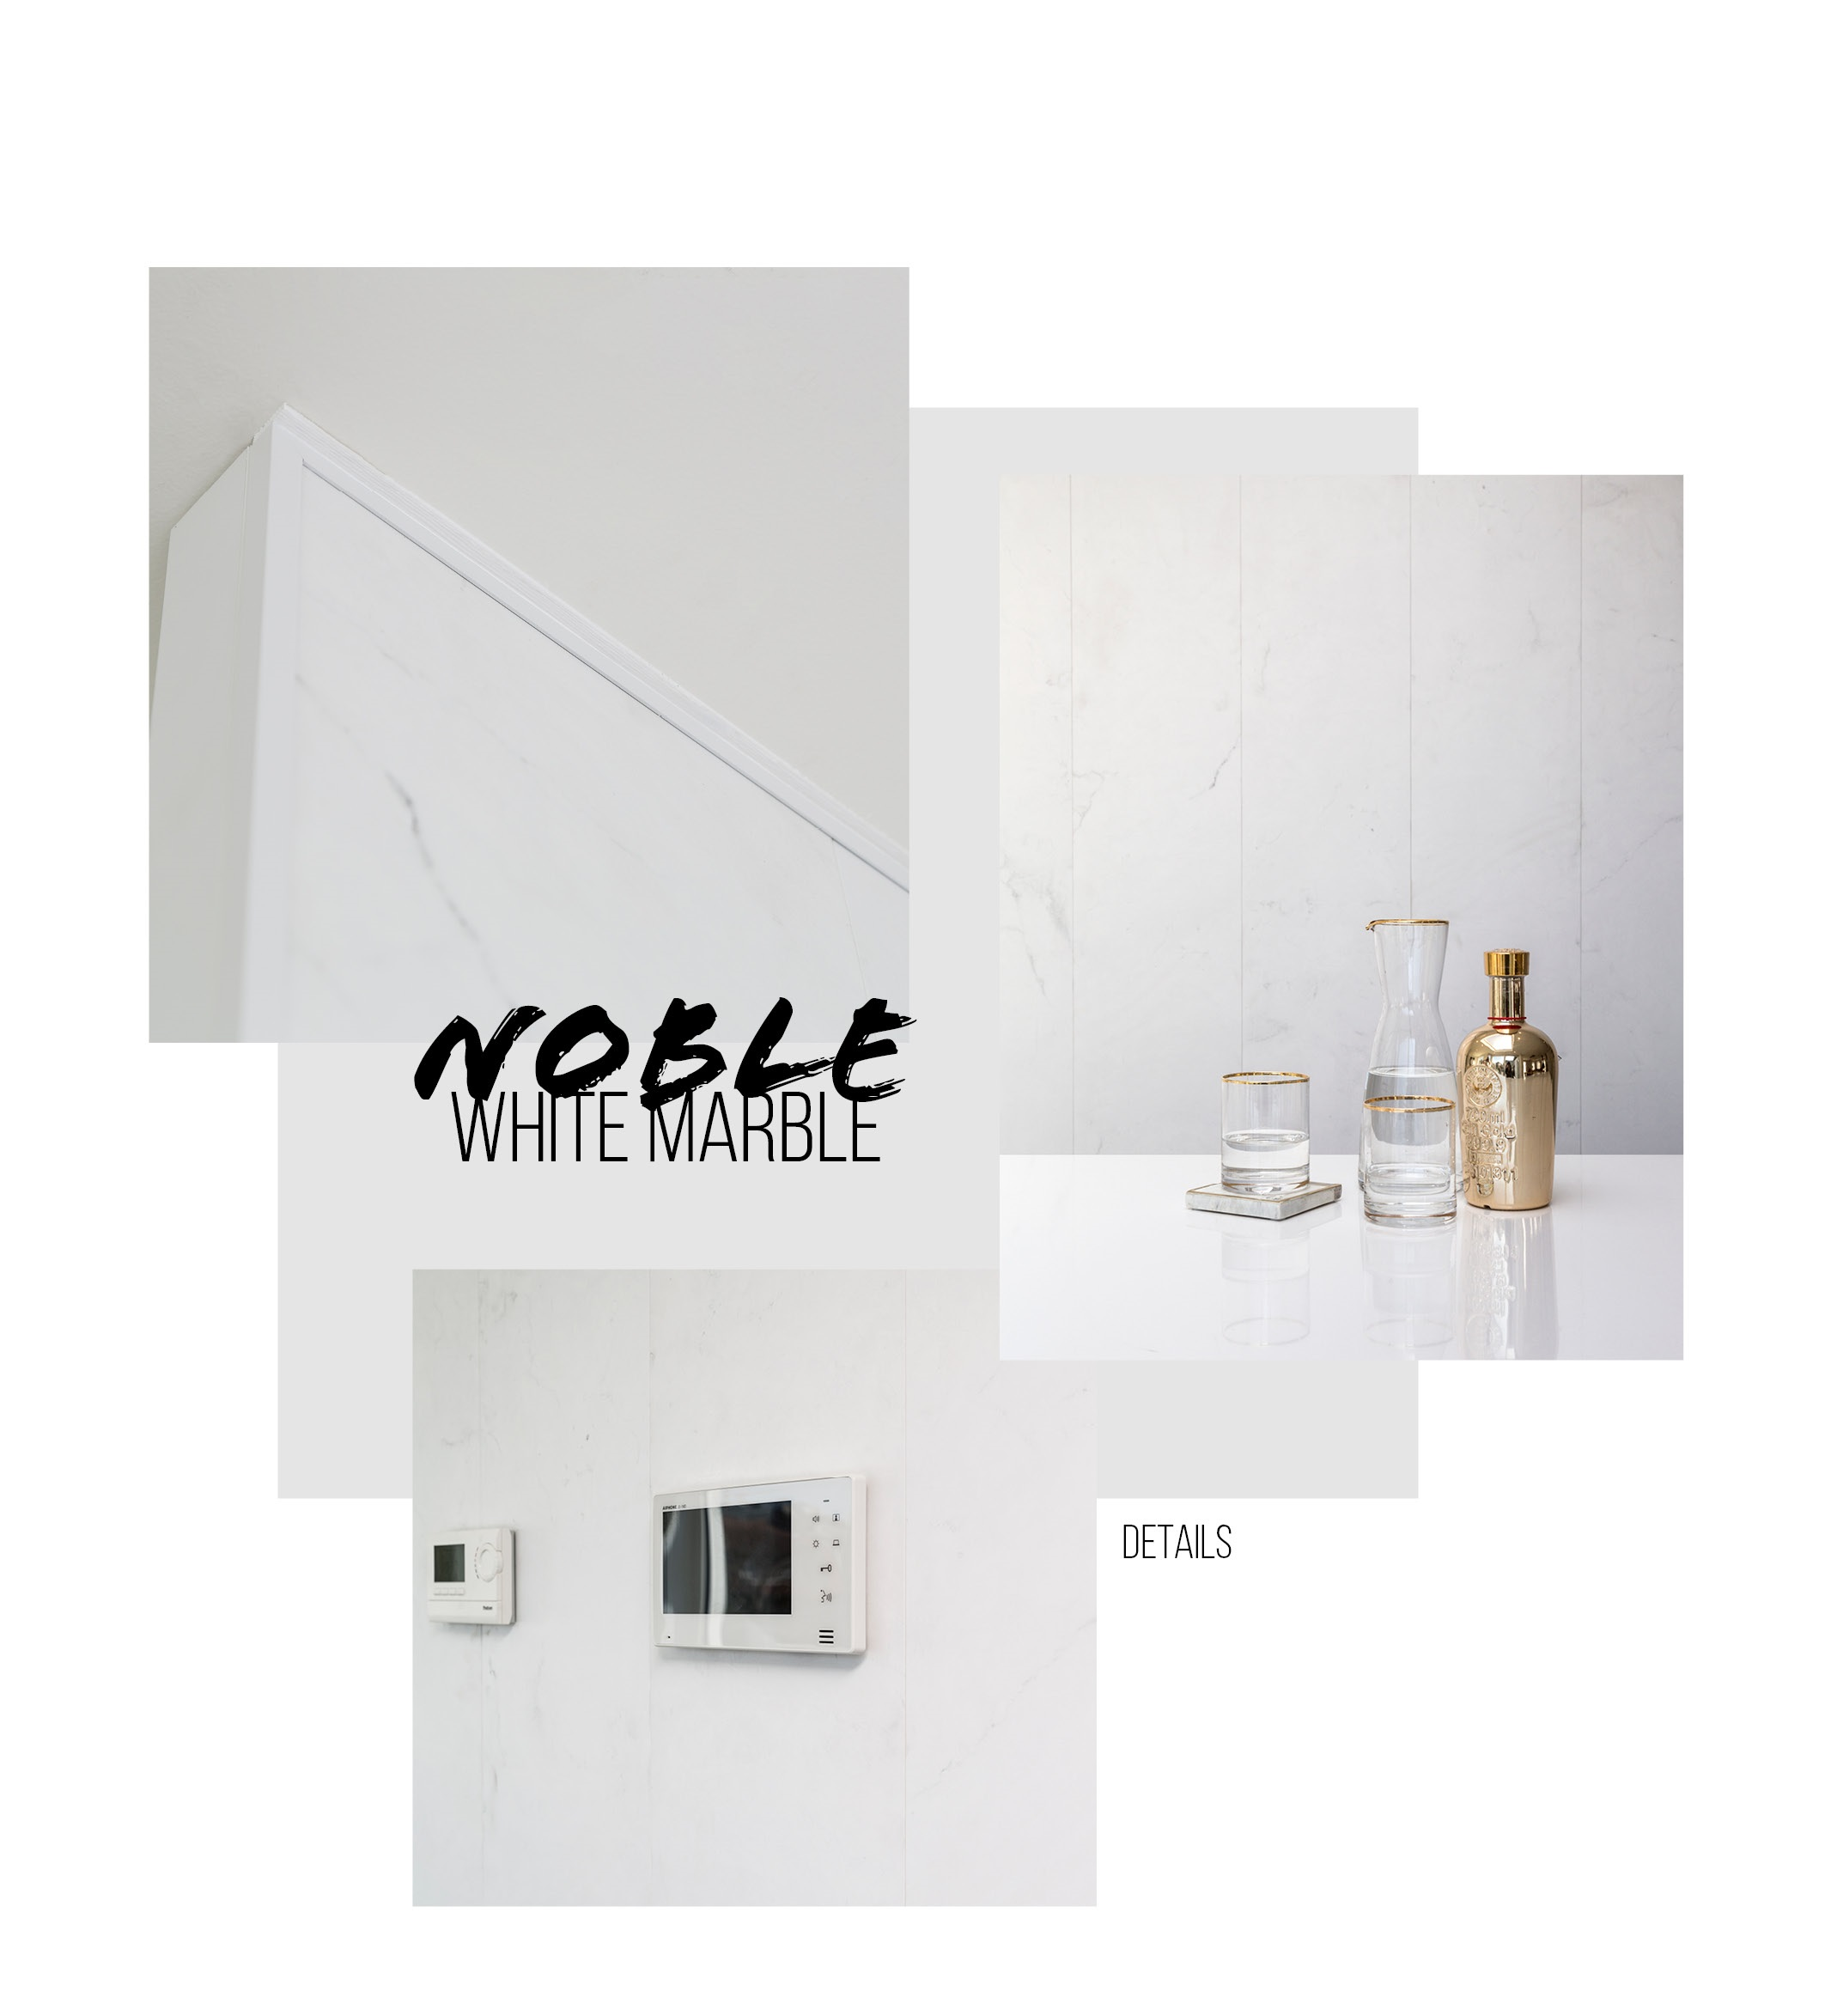 Noble white marble details